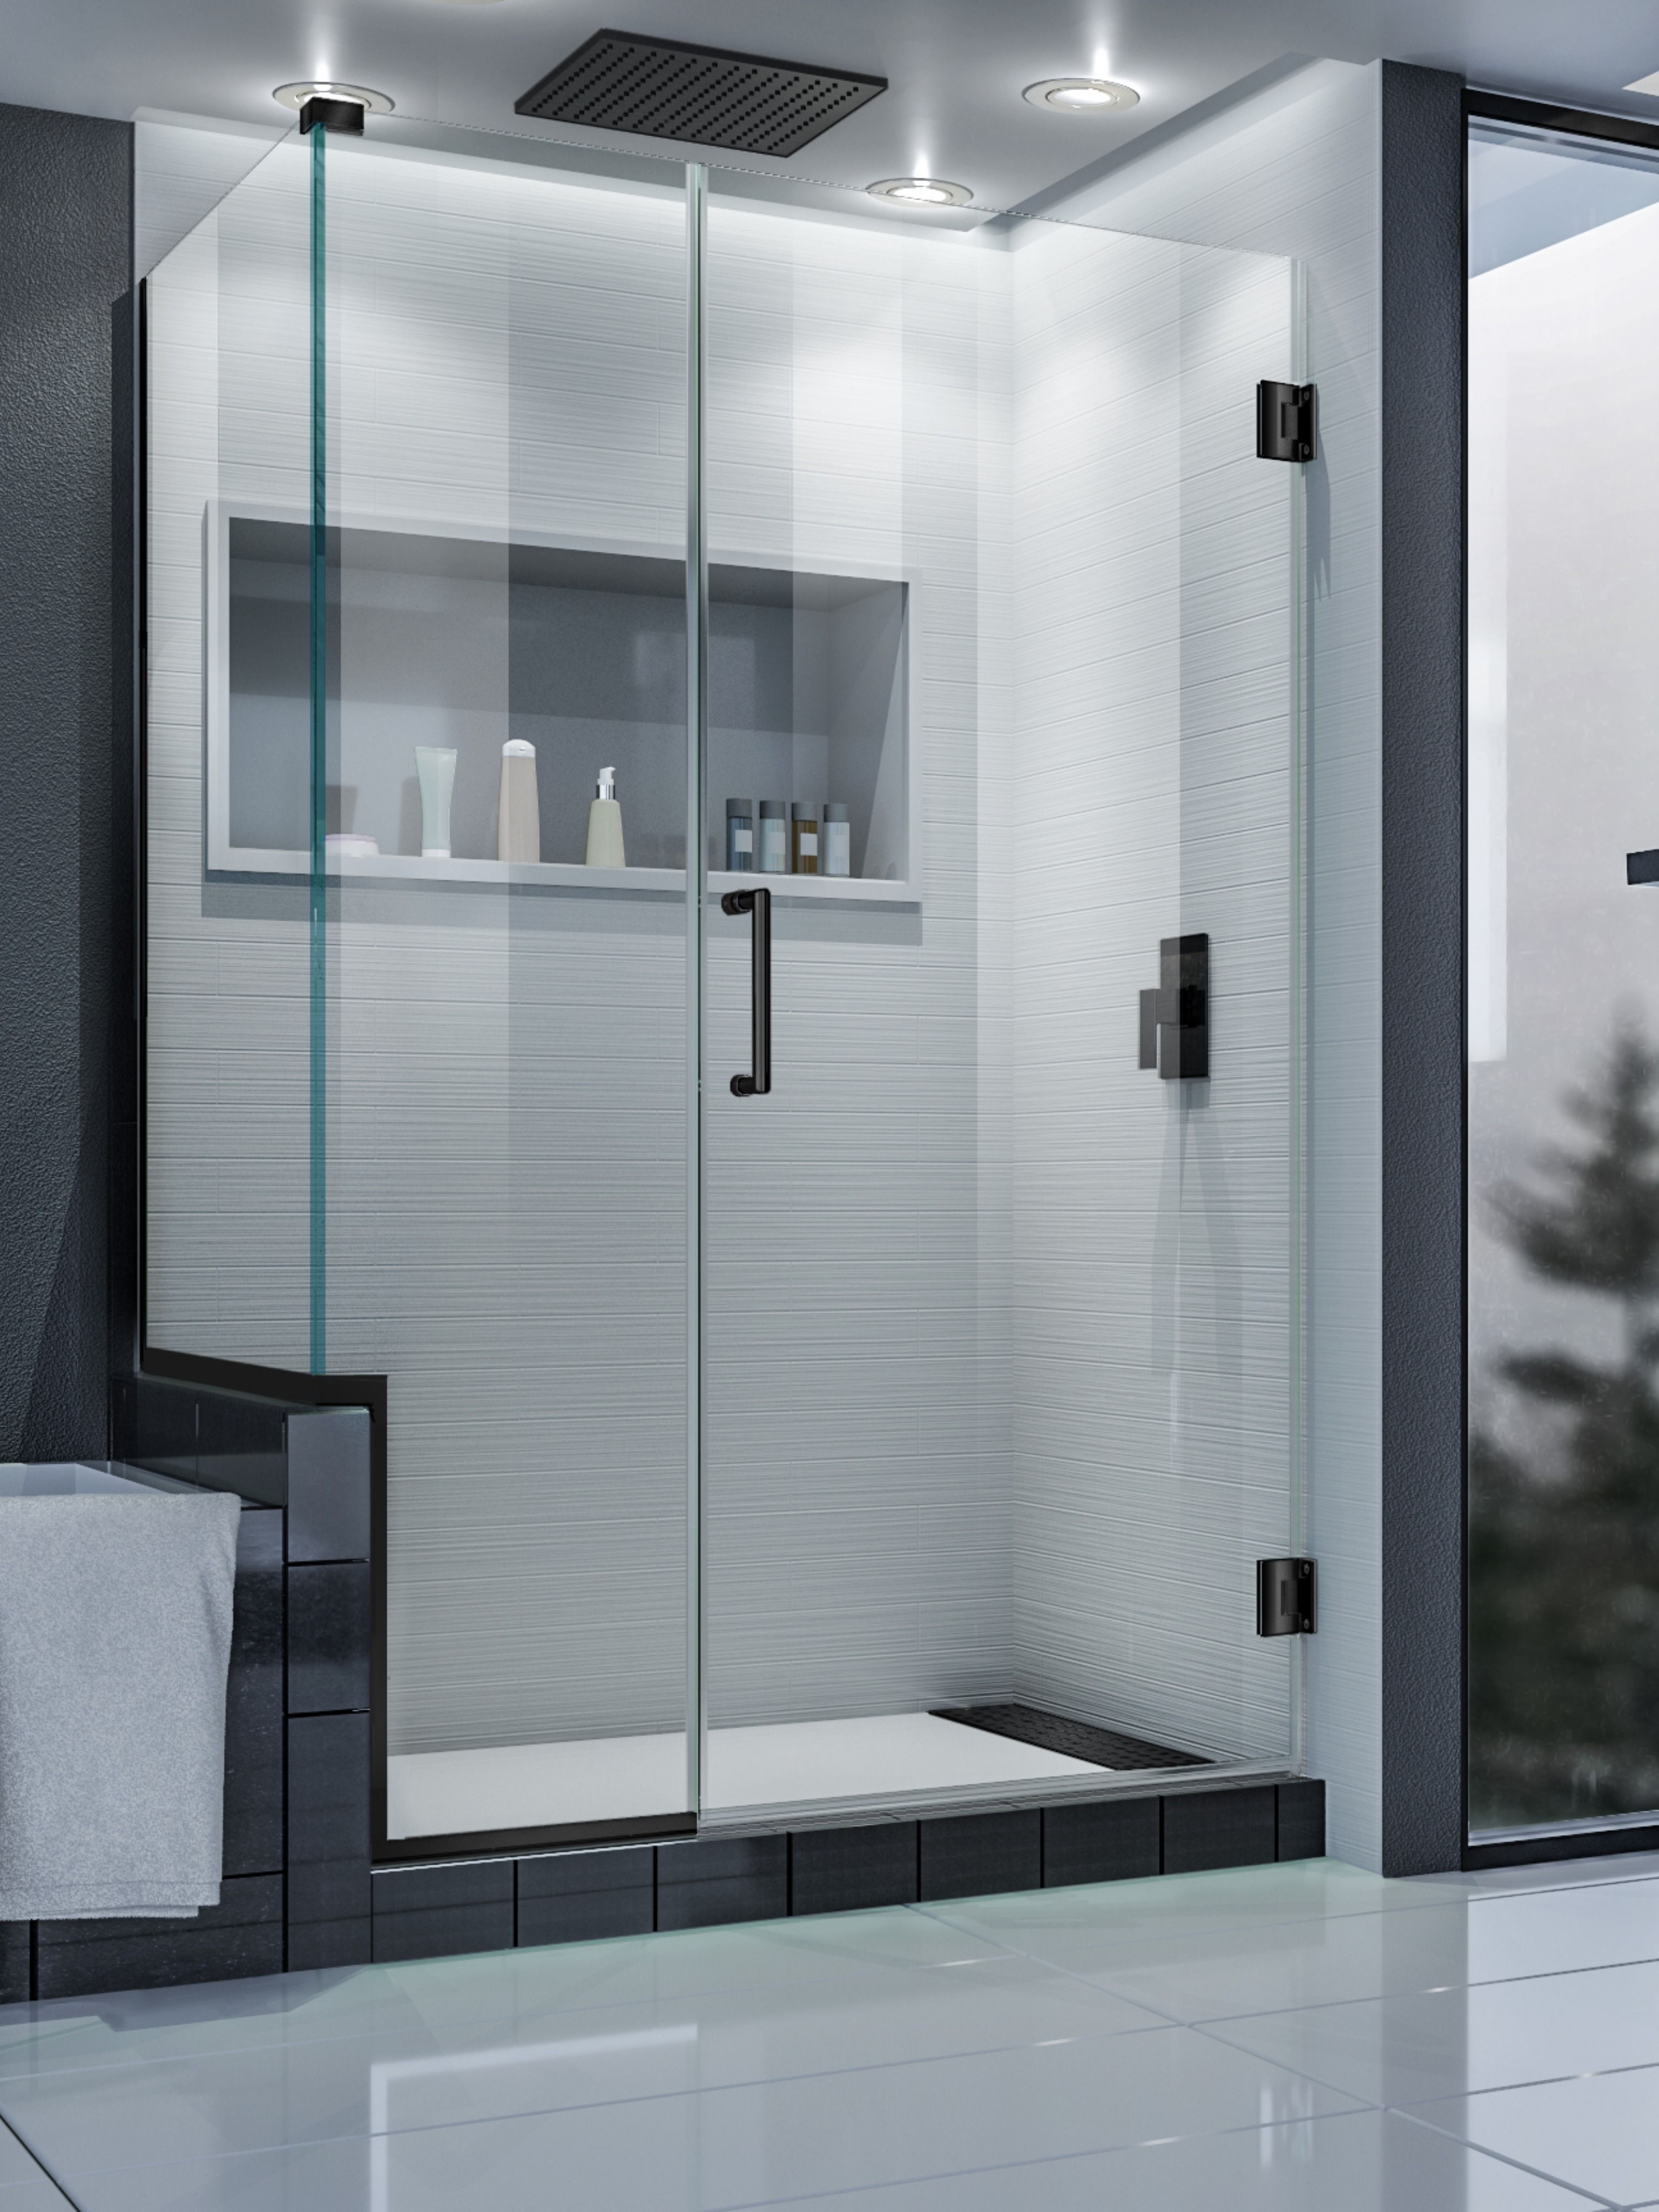 Dreamline Was Ranked The 1 Shower Door We Have Thousands Of 5